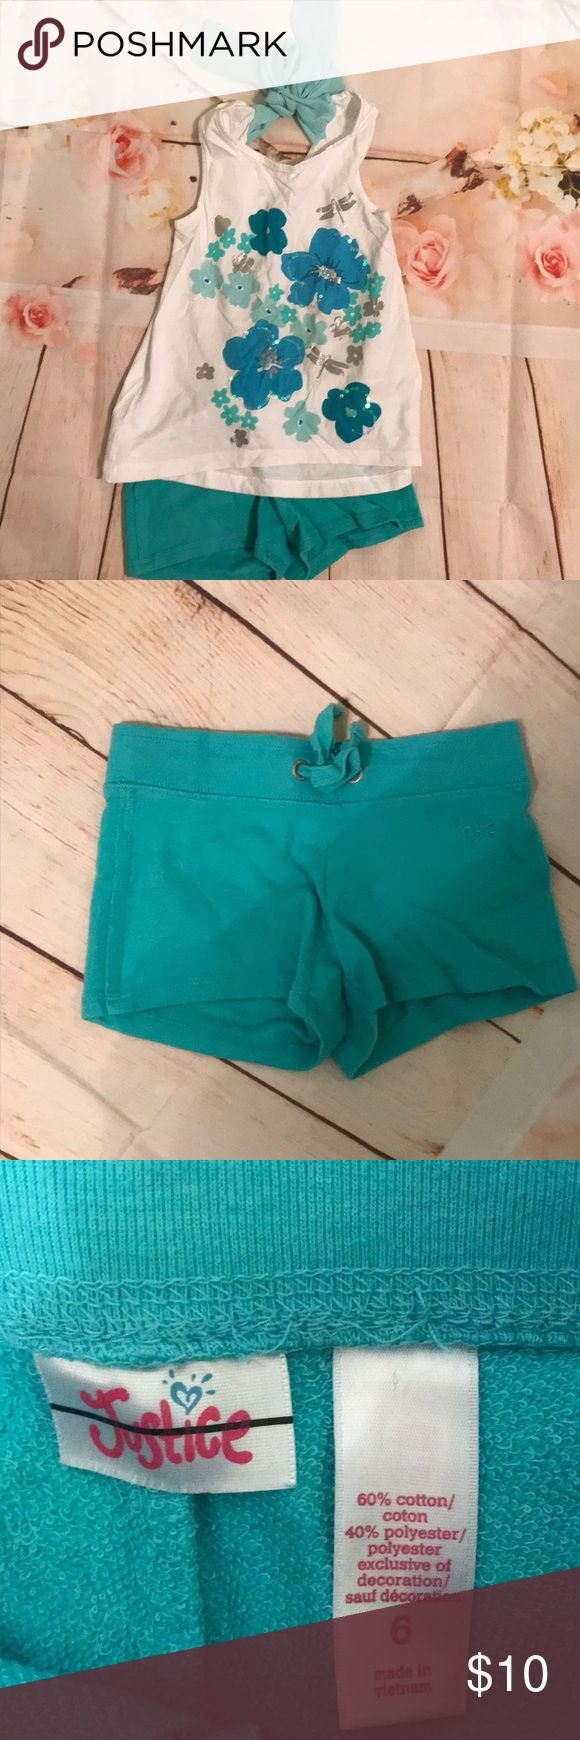 Justice girls teal shorts EUC Justice girls teal short EUC. Goes perfect with the shirt paired with it that you can also find in my closet! Feel free to bundle and save! Size: 6 Colors: teal Justice Bottoms Shorts